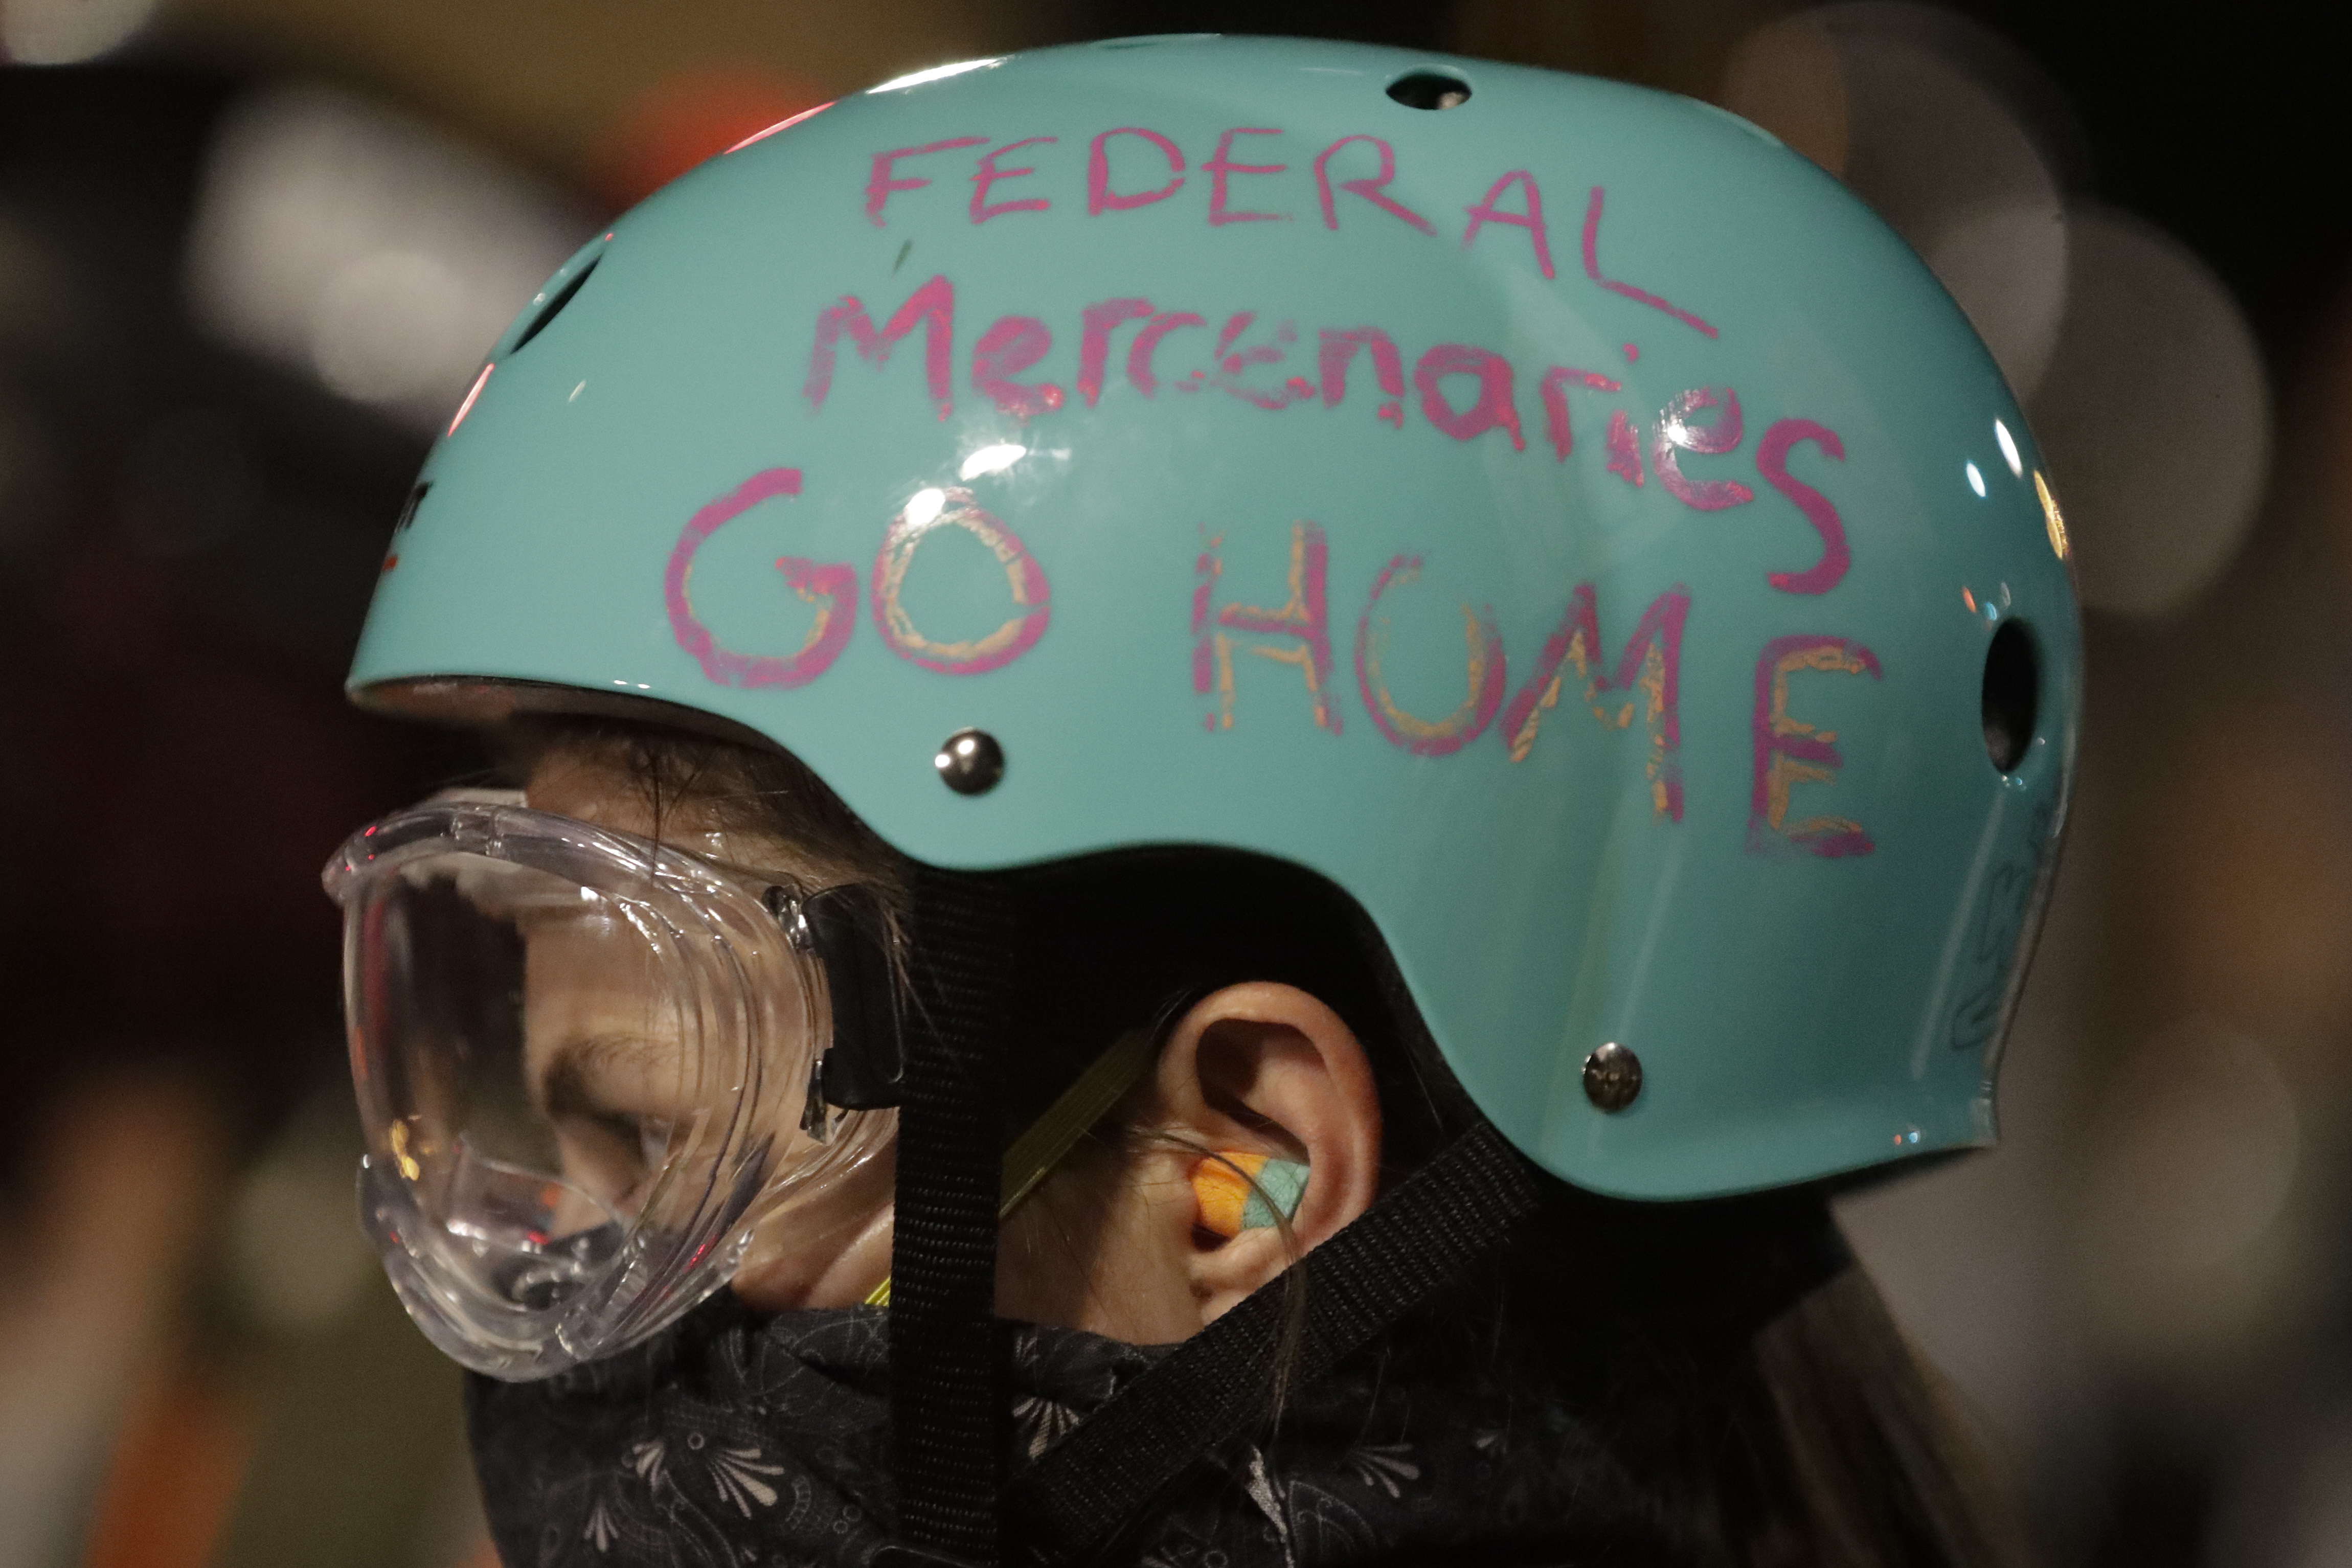 """A demonstrator's protective helmet reads """"Federal Mercenaries Go Home"""" during a Black Lives Matter protest at the Mark O. Hatfield United States Courthouse Sunday, July 26, 2020, in Portland, Ore. (AP Photo/Marcio Jose Sanchez)"""